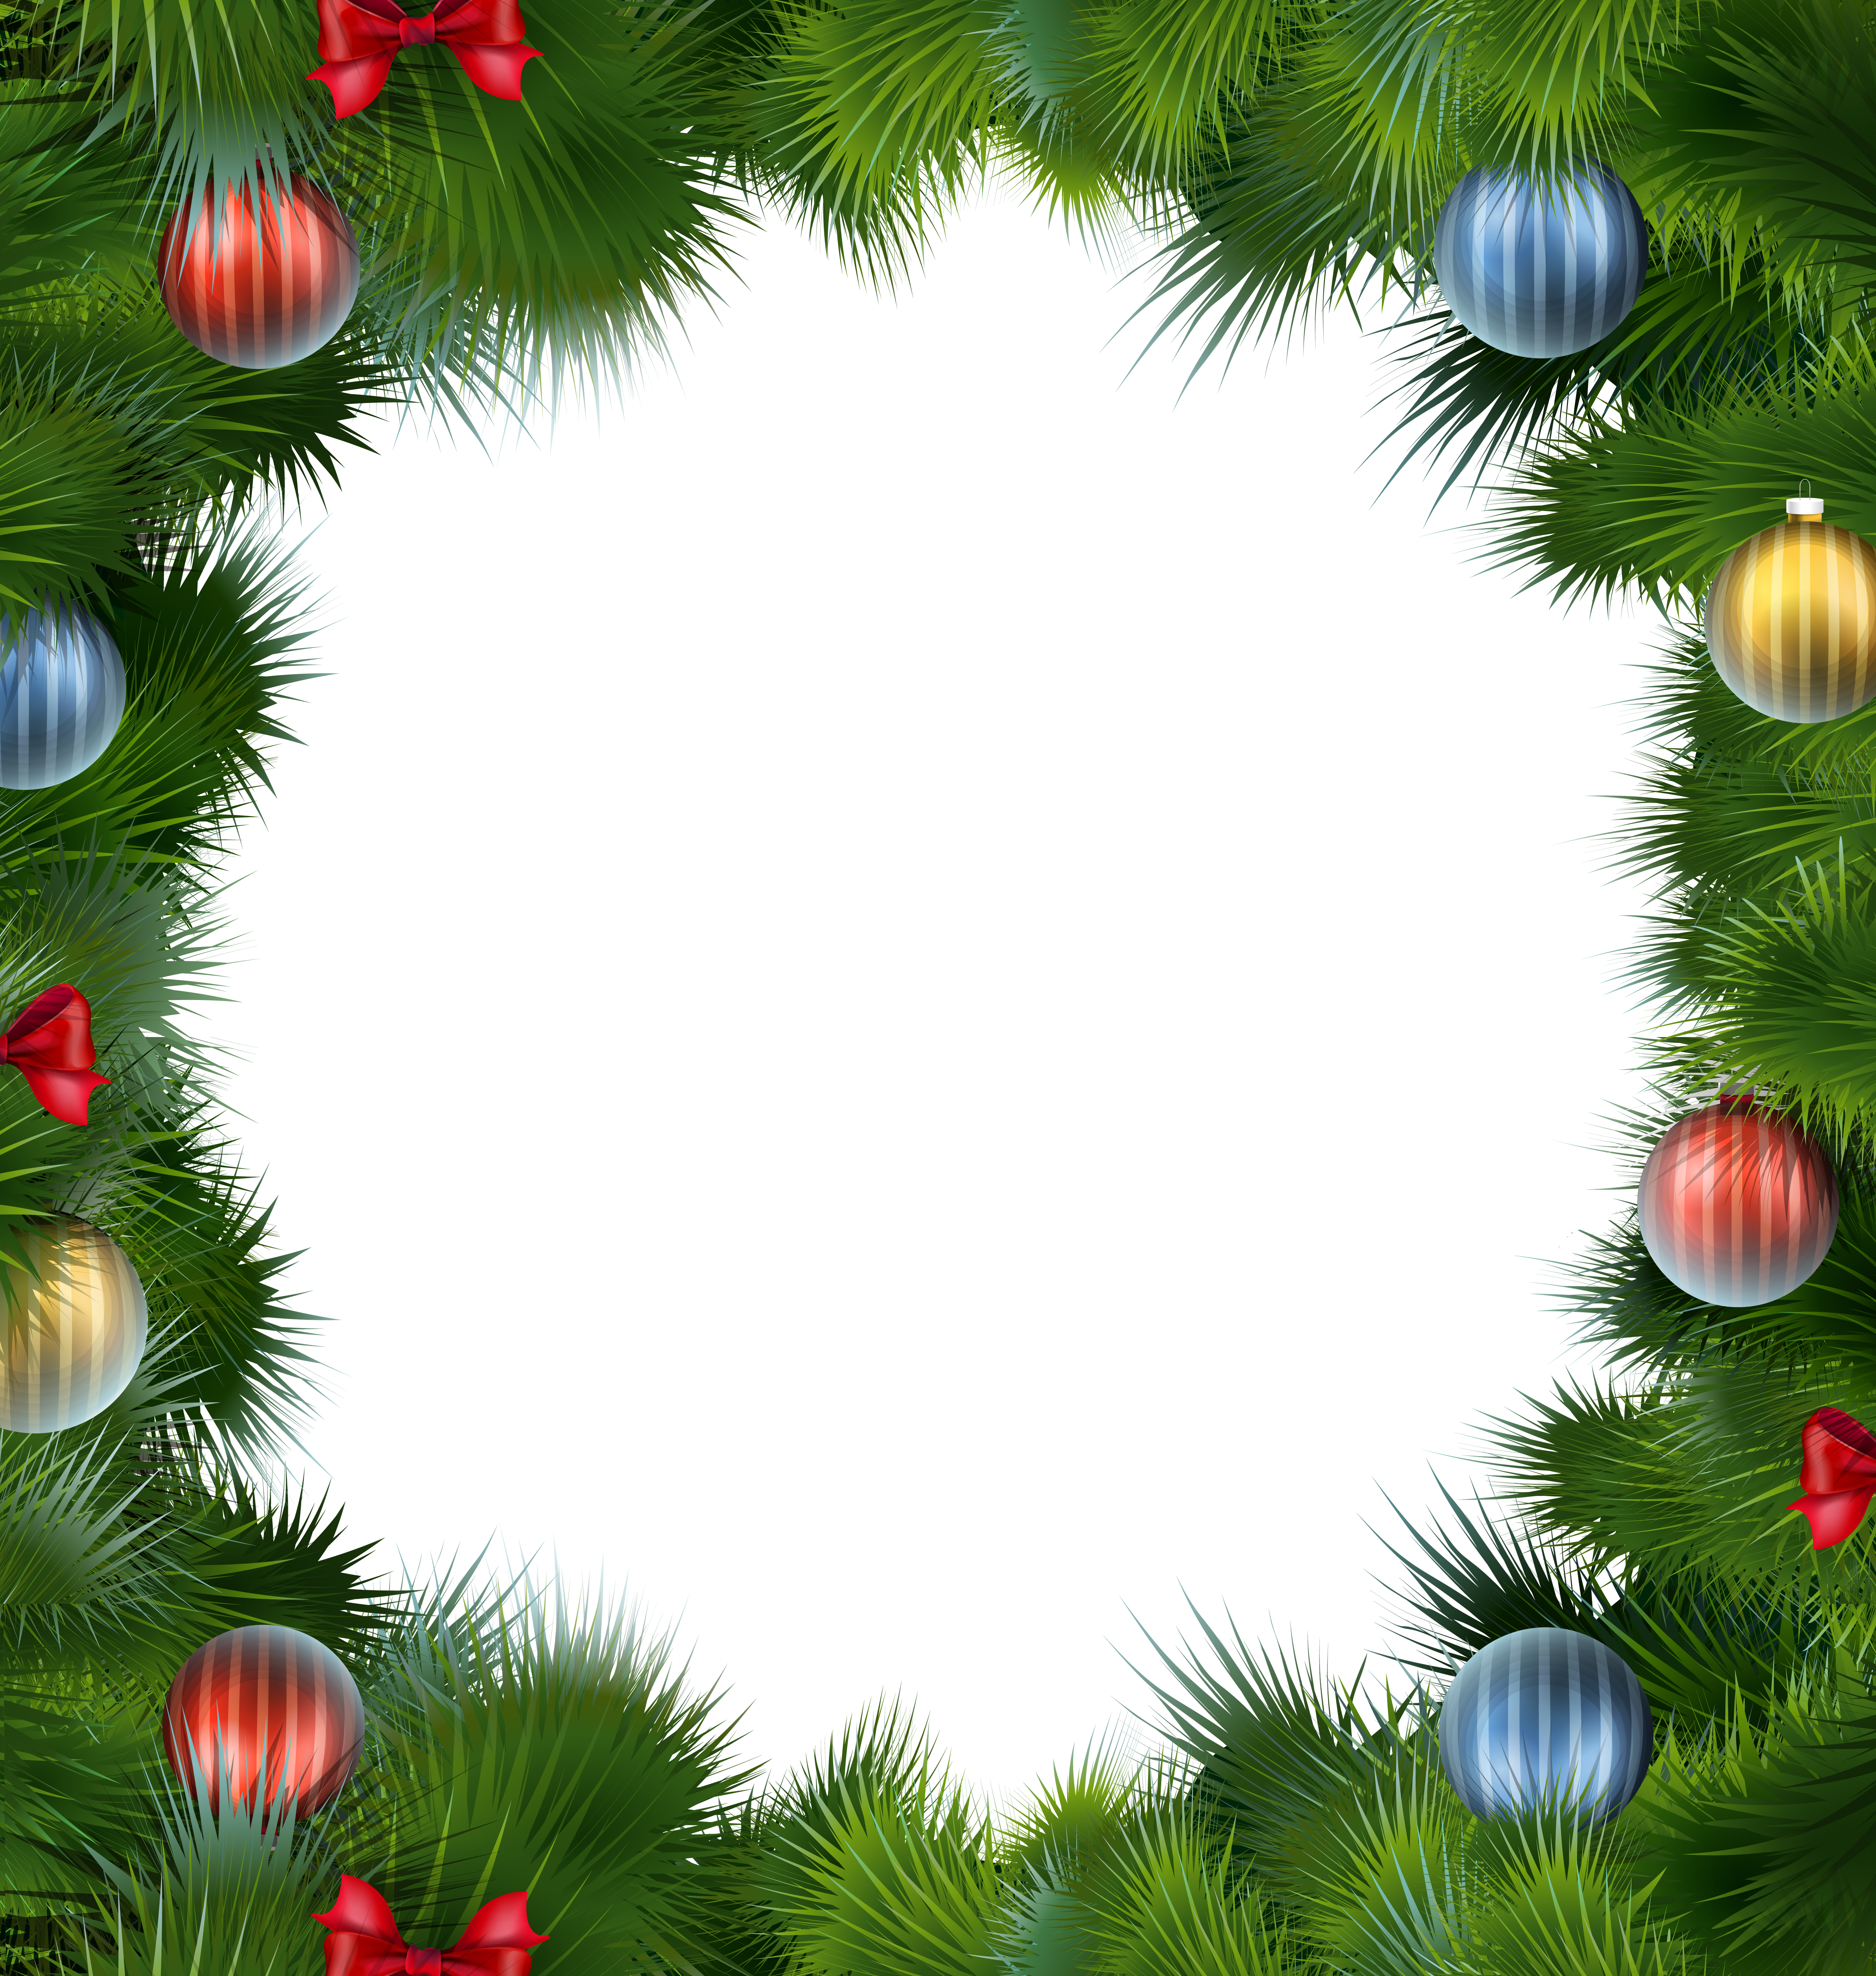 Christmas clipart frame clip freeuse library Christmas Deco Frame with Christmas Balls PNG Clipart | Gallery ... clip freeuse library